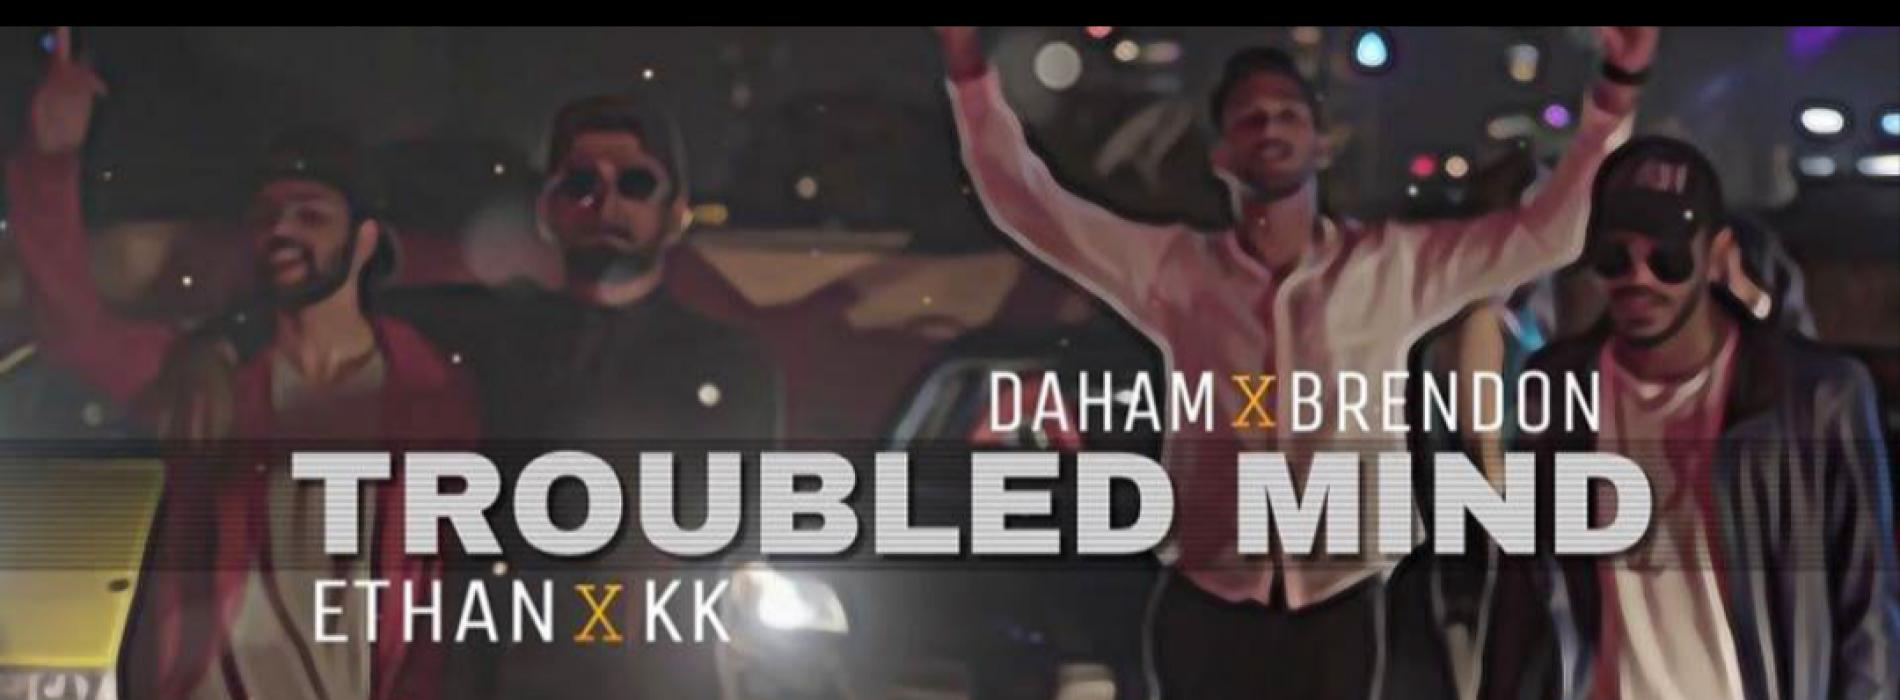 KK x Brendon x Daham x Ethan – TROUBLED MIND (Official Music Video)